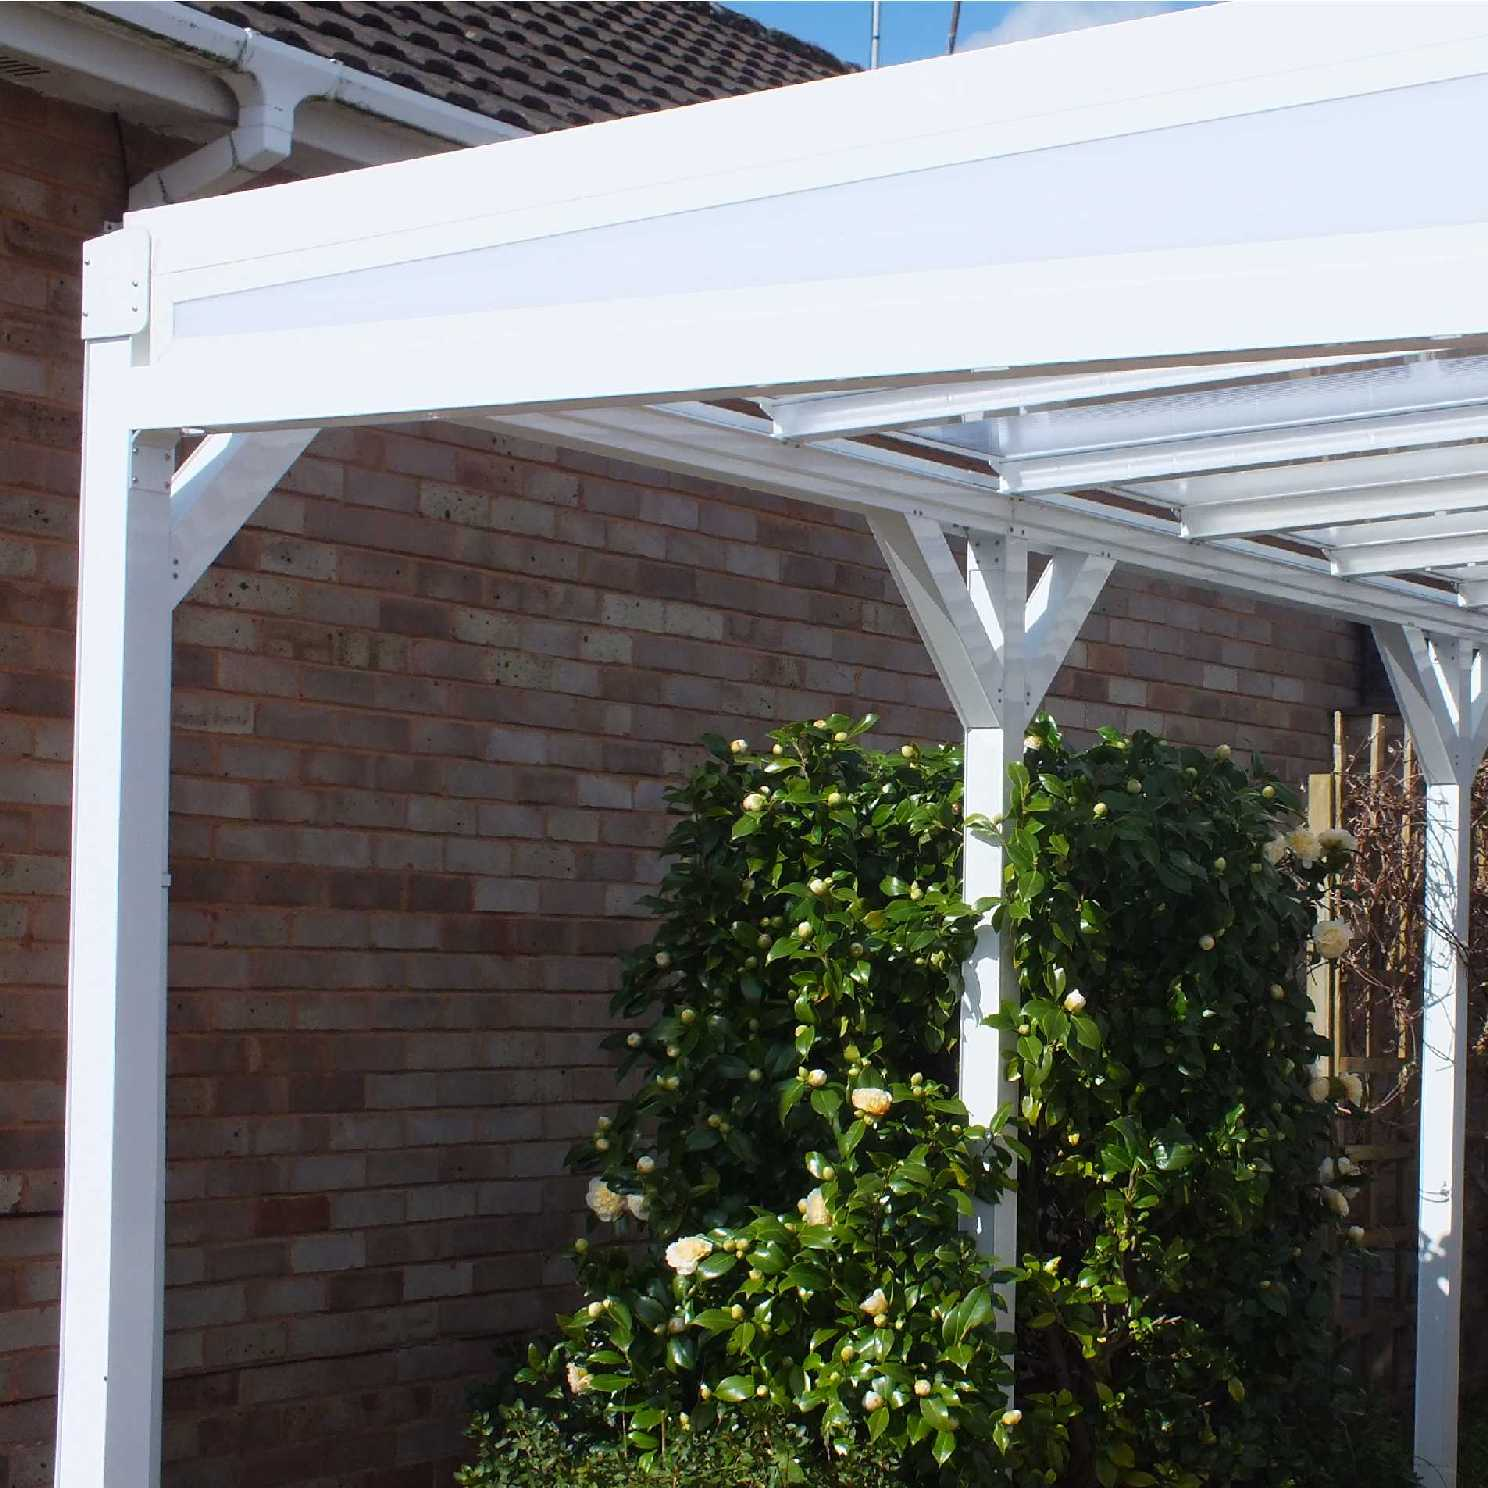 Omega Smart White Lean-To Canopy with 16mm Polycarbonate Glazing - 12.0m (W) x 3.5m (P), (5) Supporting Posts from Omega Build